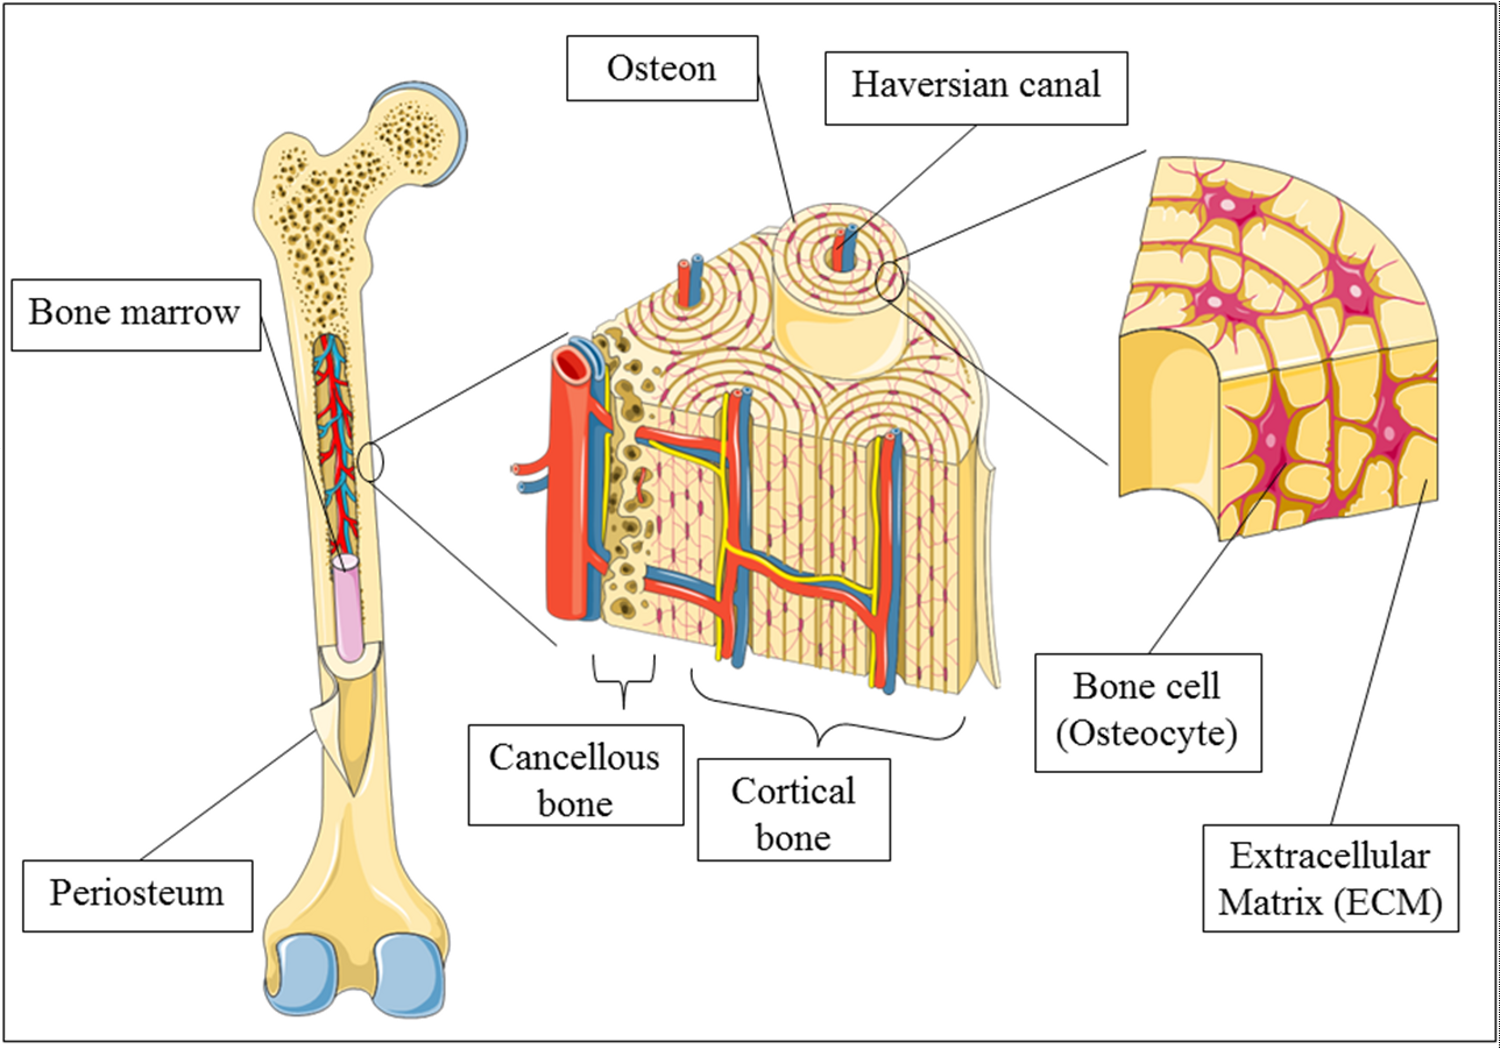 Anatomy and physiology bones and skeletal tissue | anatomy ...